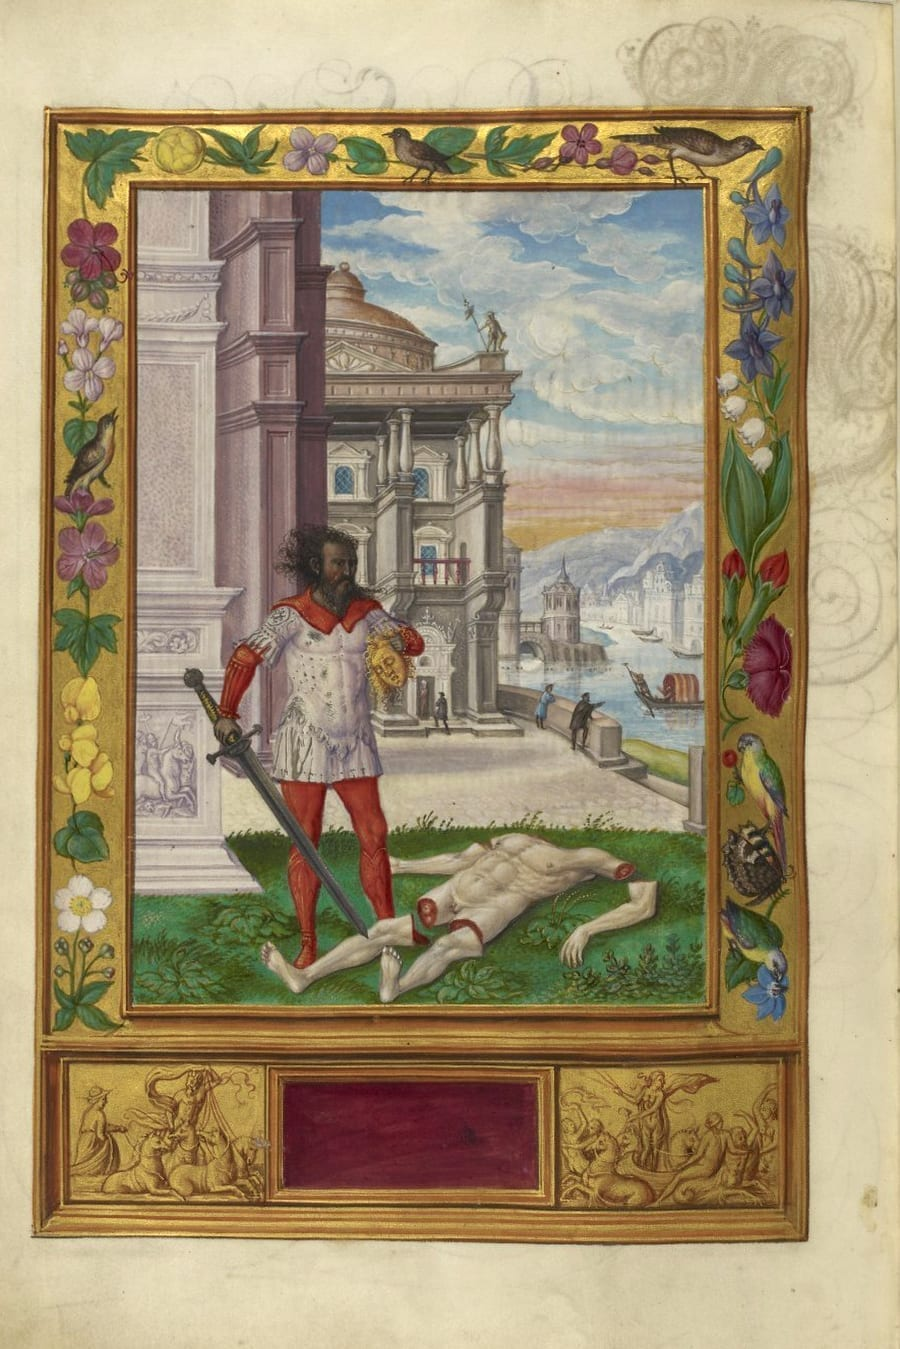 Illustration of man with a sword from the Alchemical manuscript Splendor Solis